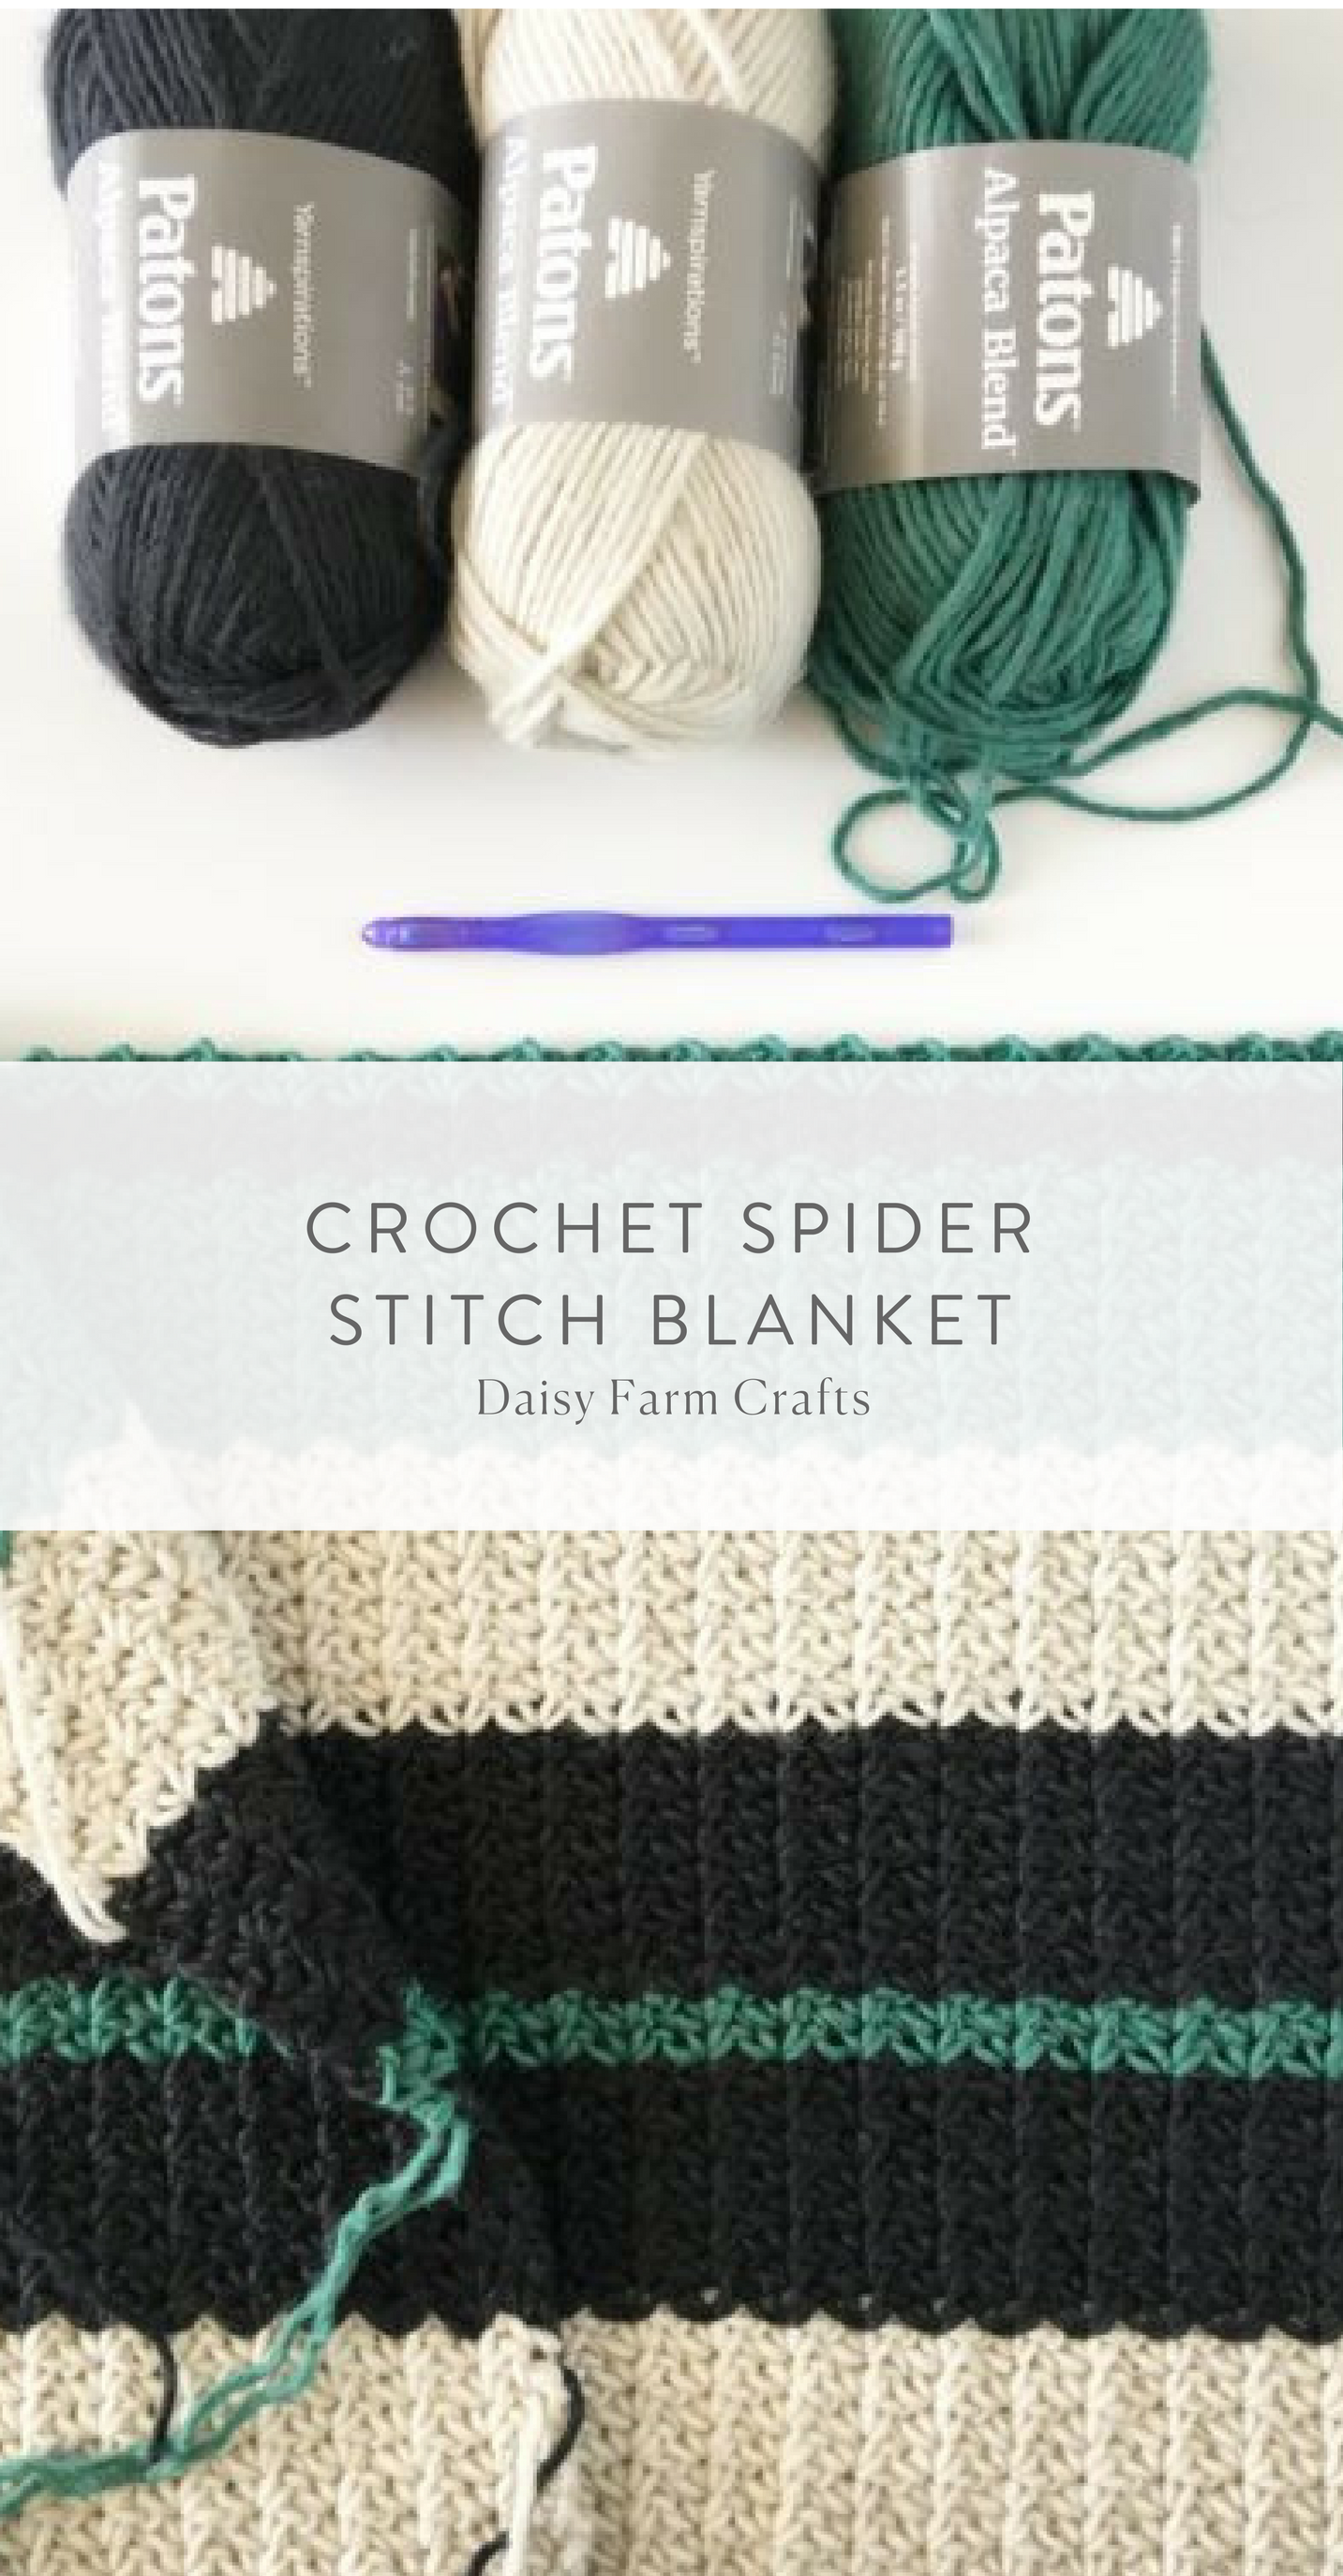 Free Pattern - Crochet Spider Stitch Blanket | Crochet | Pinterest ...